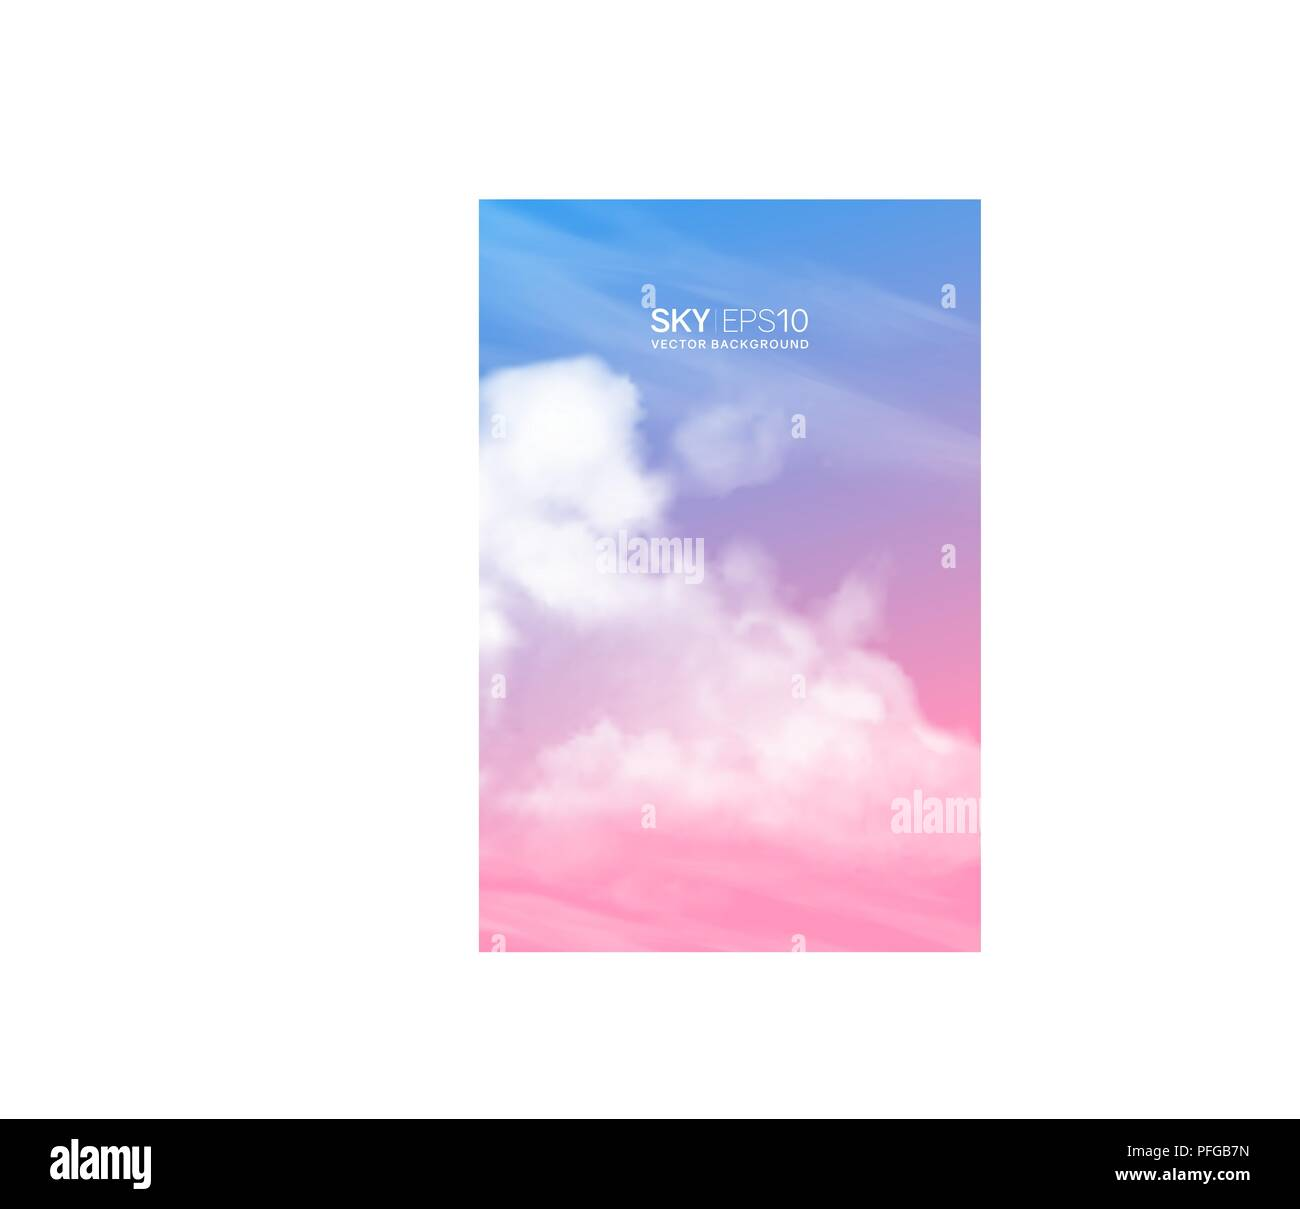 Vertical vector background with realistic pink-blue sky and clouds. - Stock Image